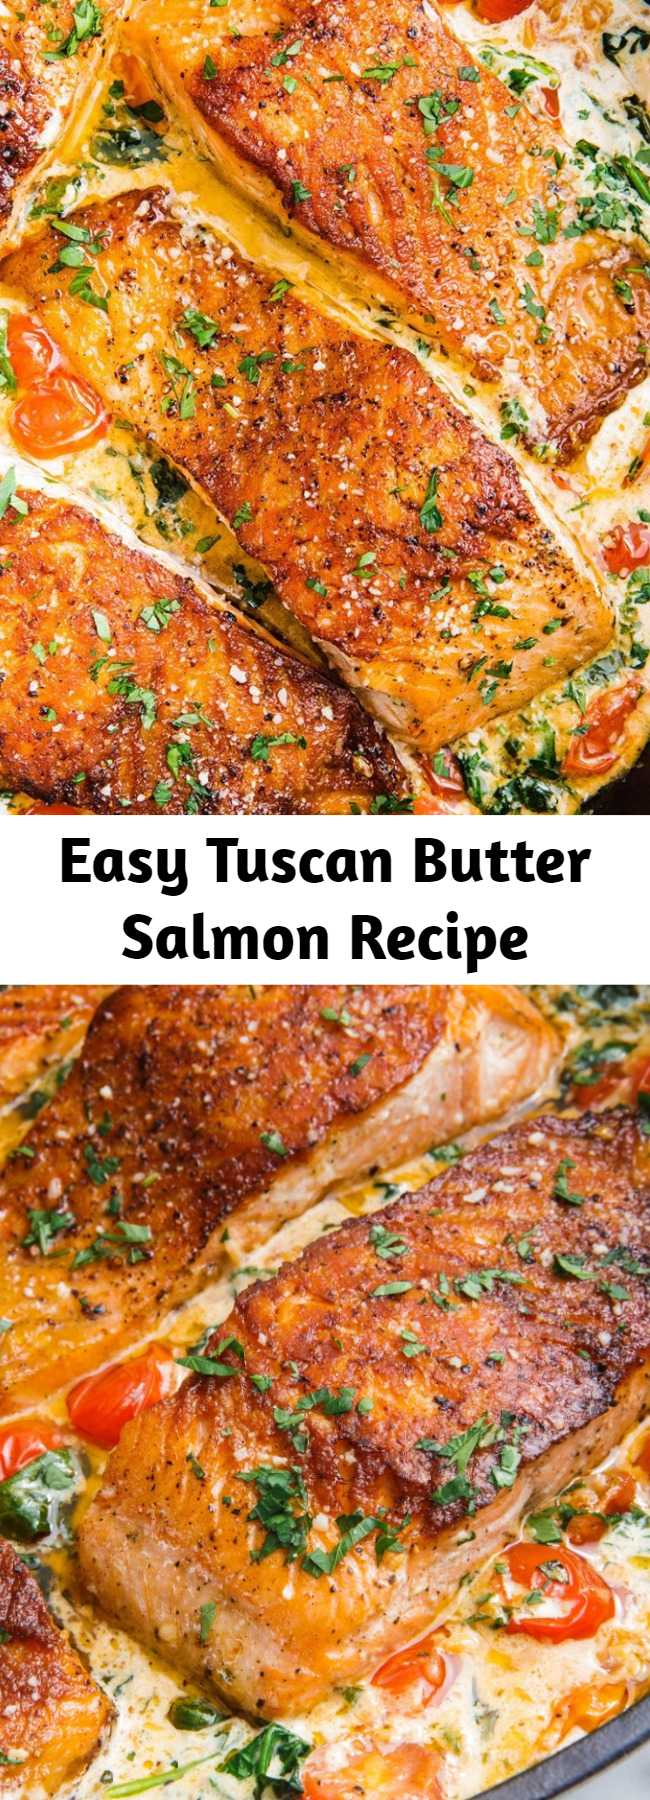 Easy Tuscan Butter Salmon Recipe - There's a reason this is one of our most popular recipes of all time. The tomato-and-basil cream sauce with Parmesan is unbelievably dreamy. We make it often for friends and family because we love it so much. #healthyrecipes #easyrecipes #weeknightdinners #salmon #tuscanbuttersalmon